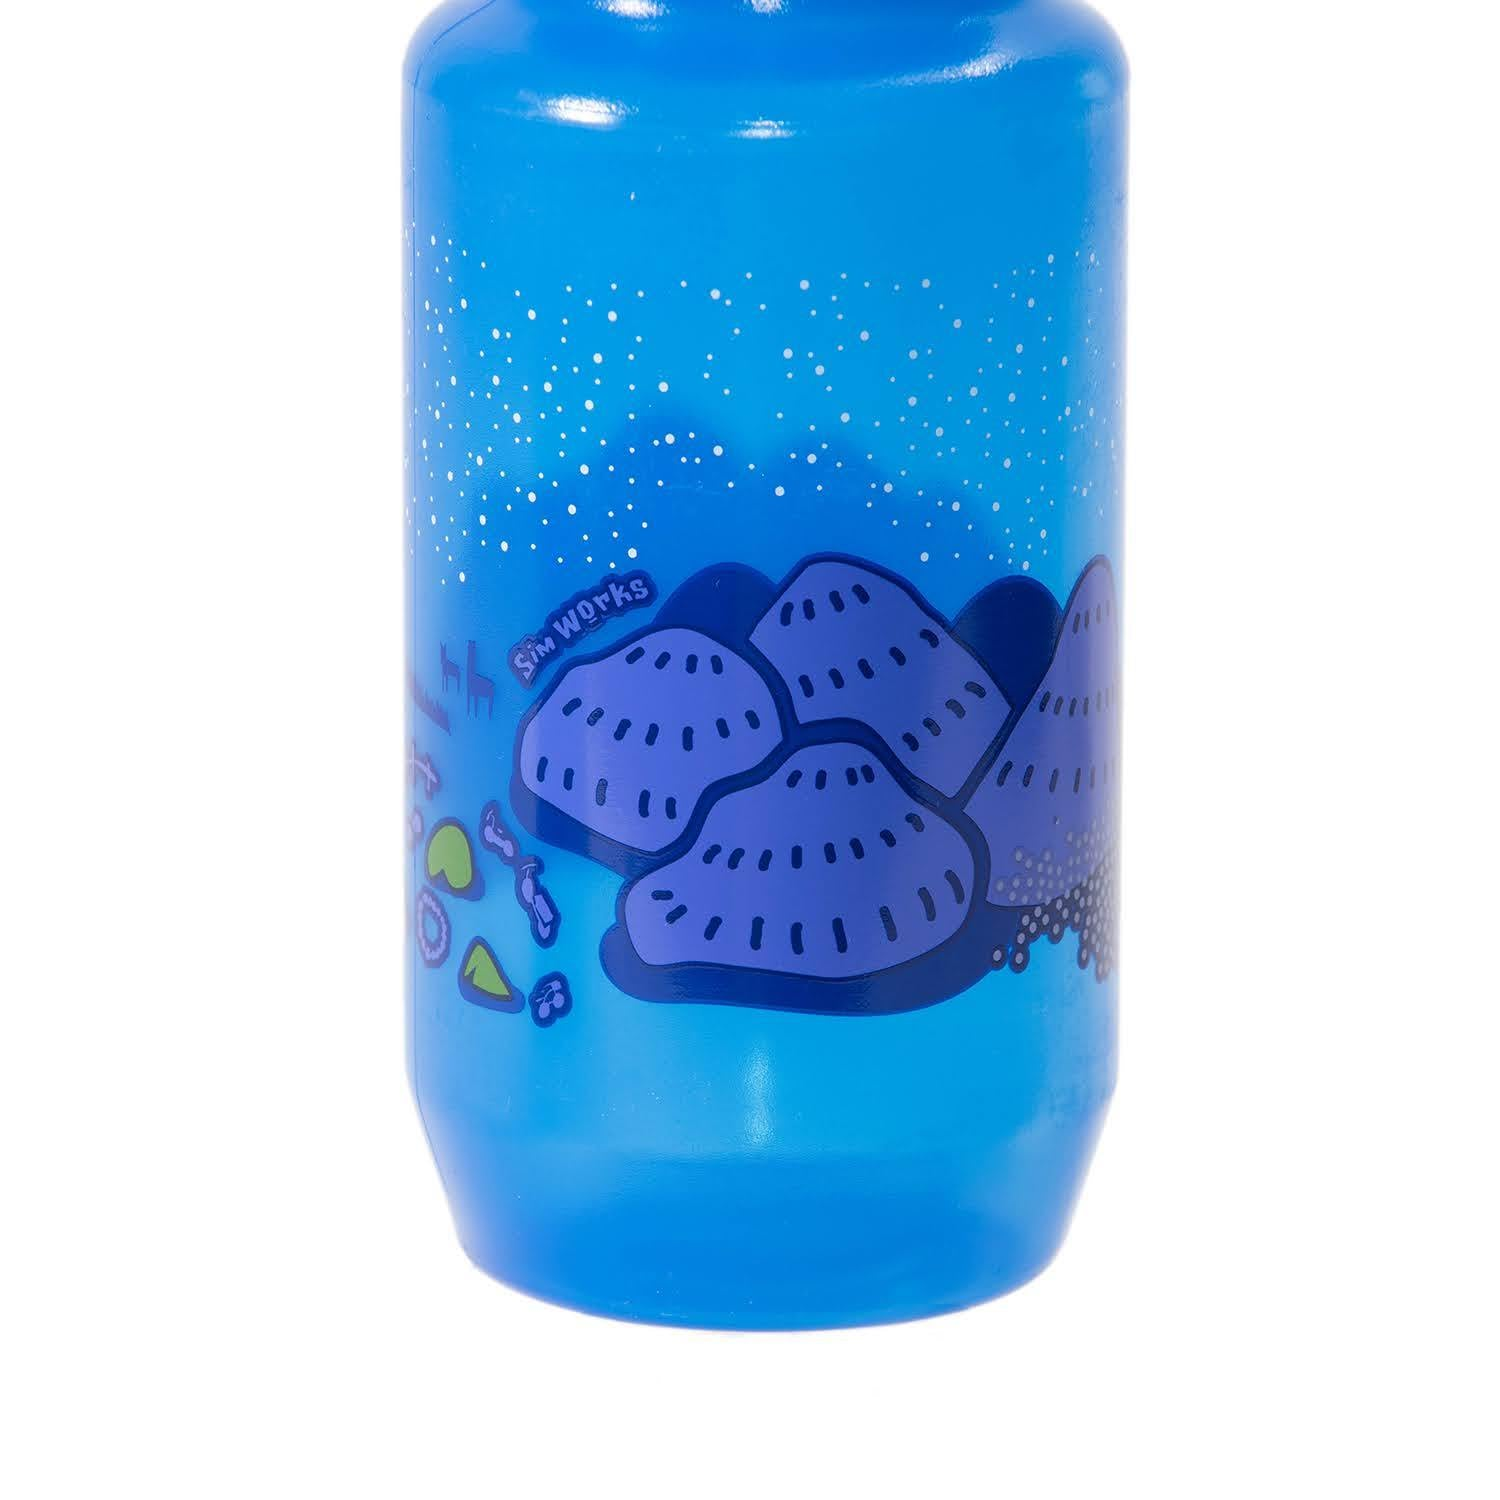 SimWorks Hoshizora Water Bottle